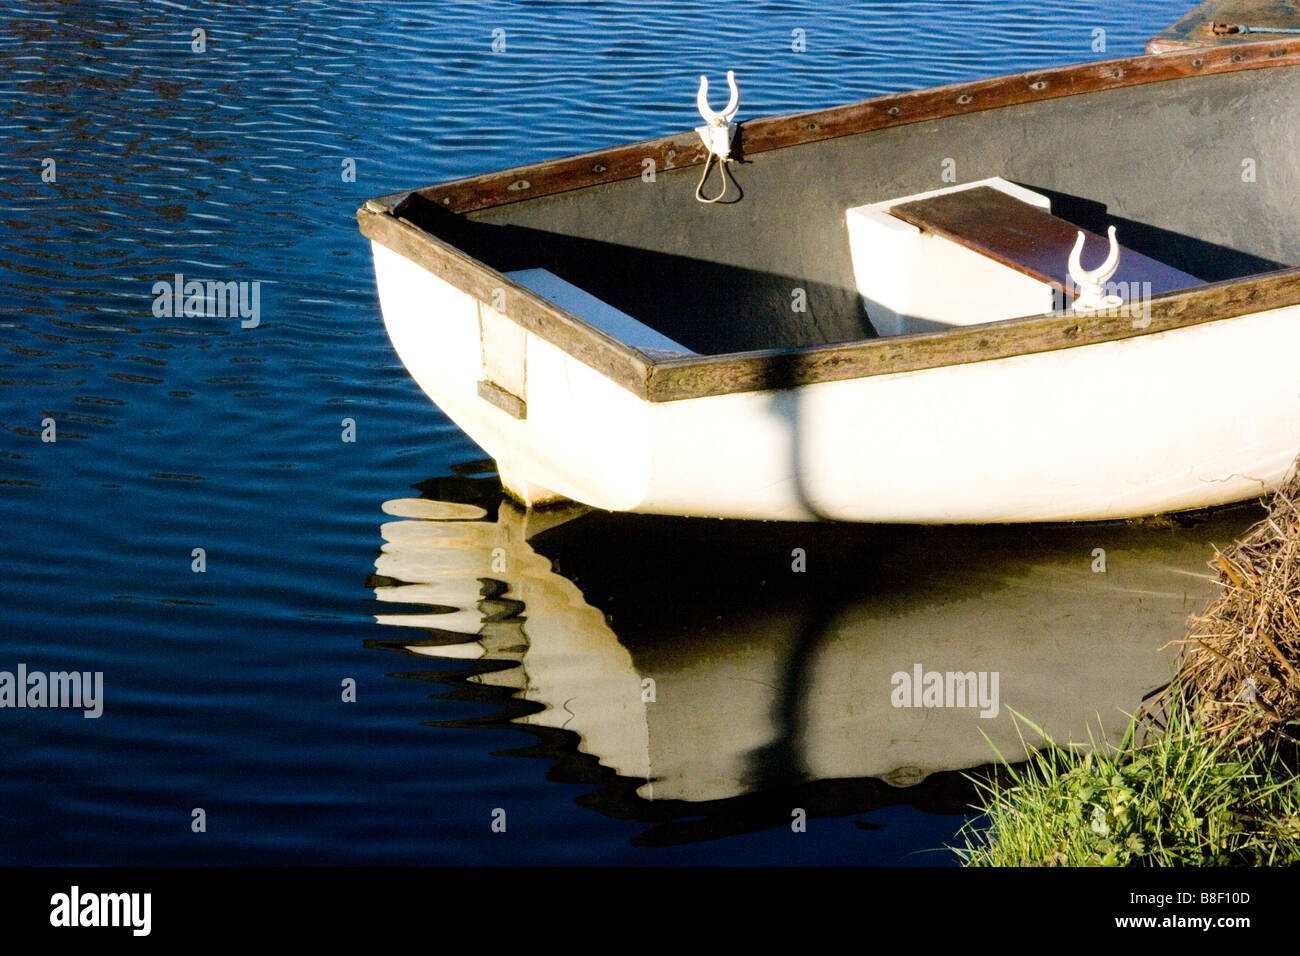 Moored white rowing boat reflected in water - Stock Image